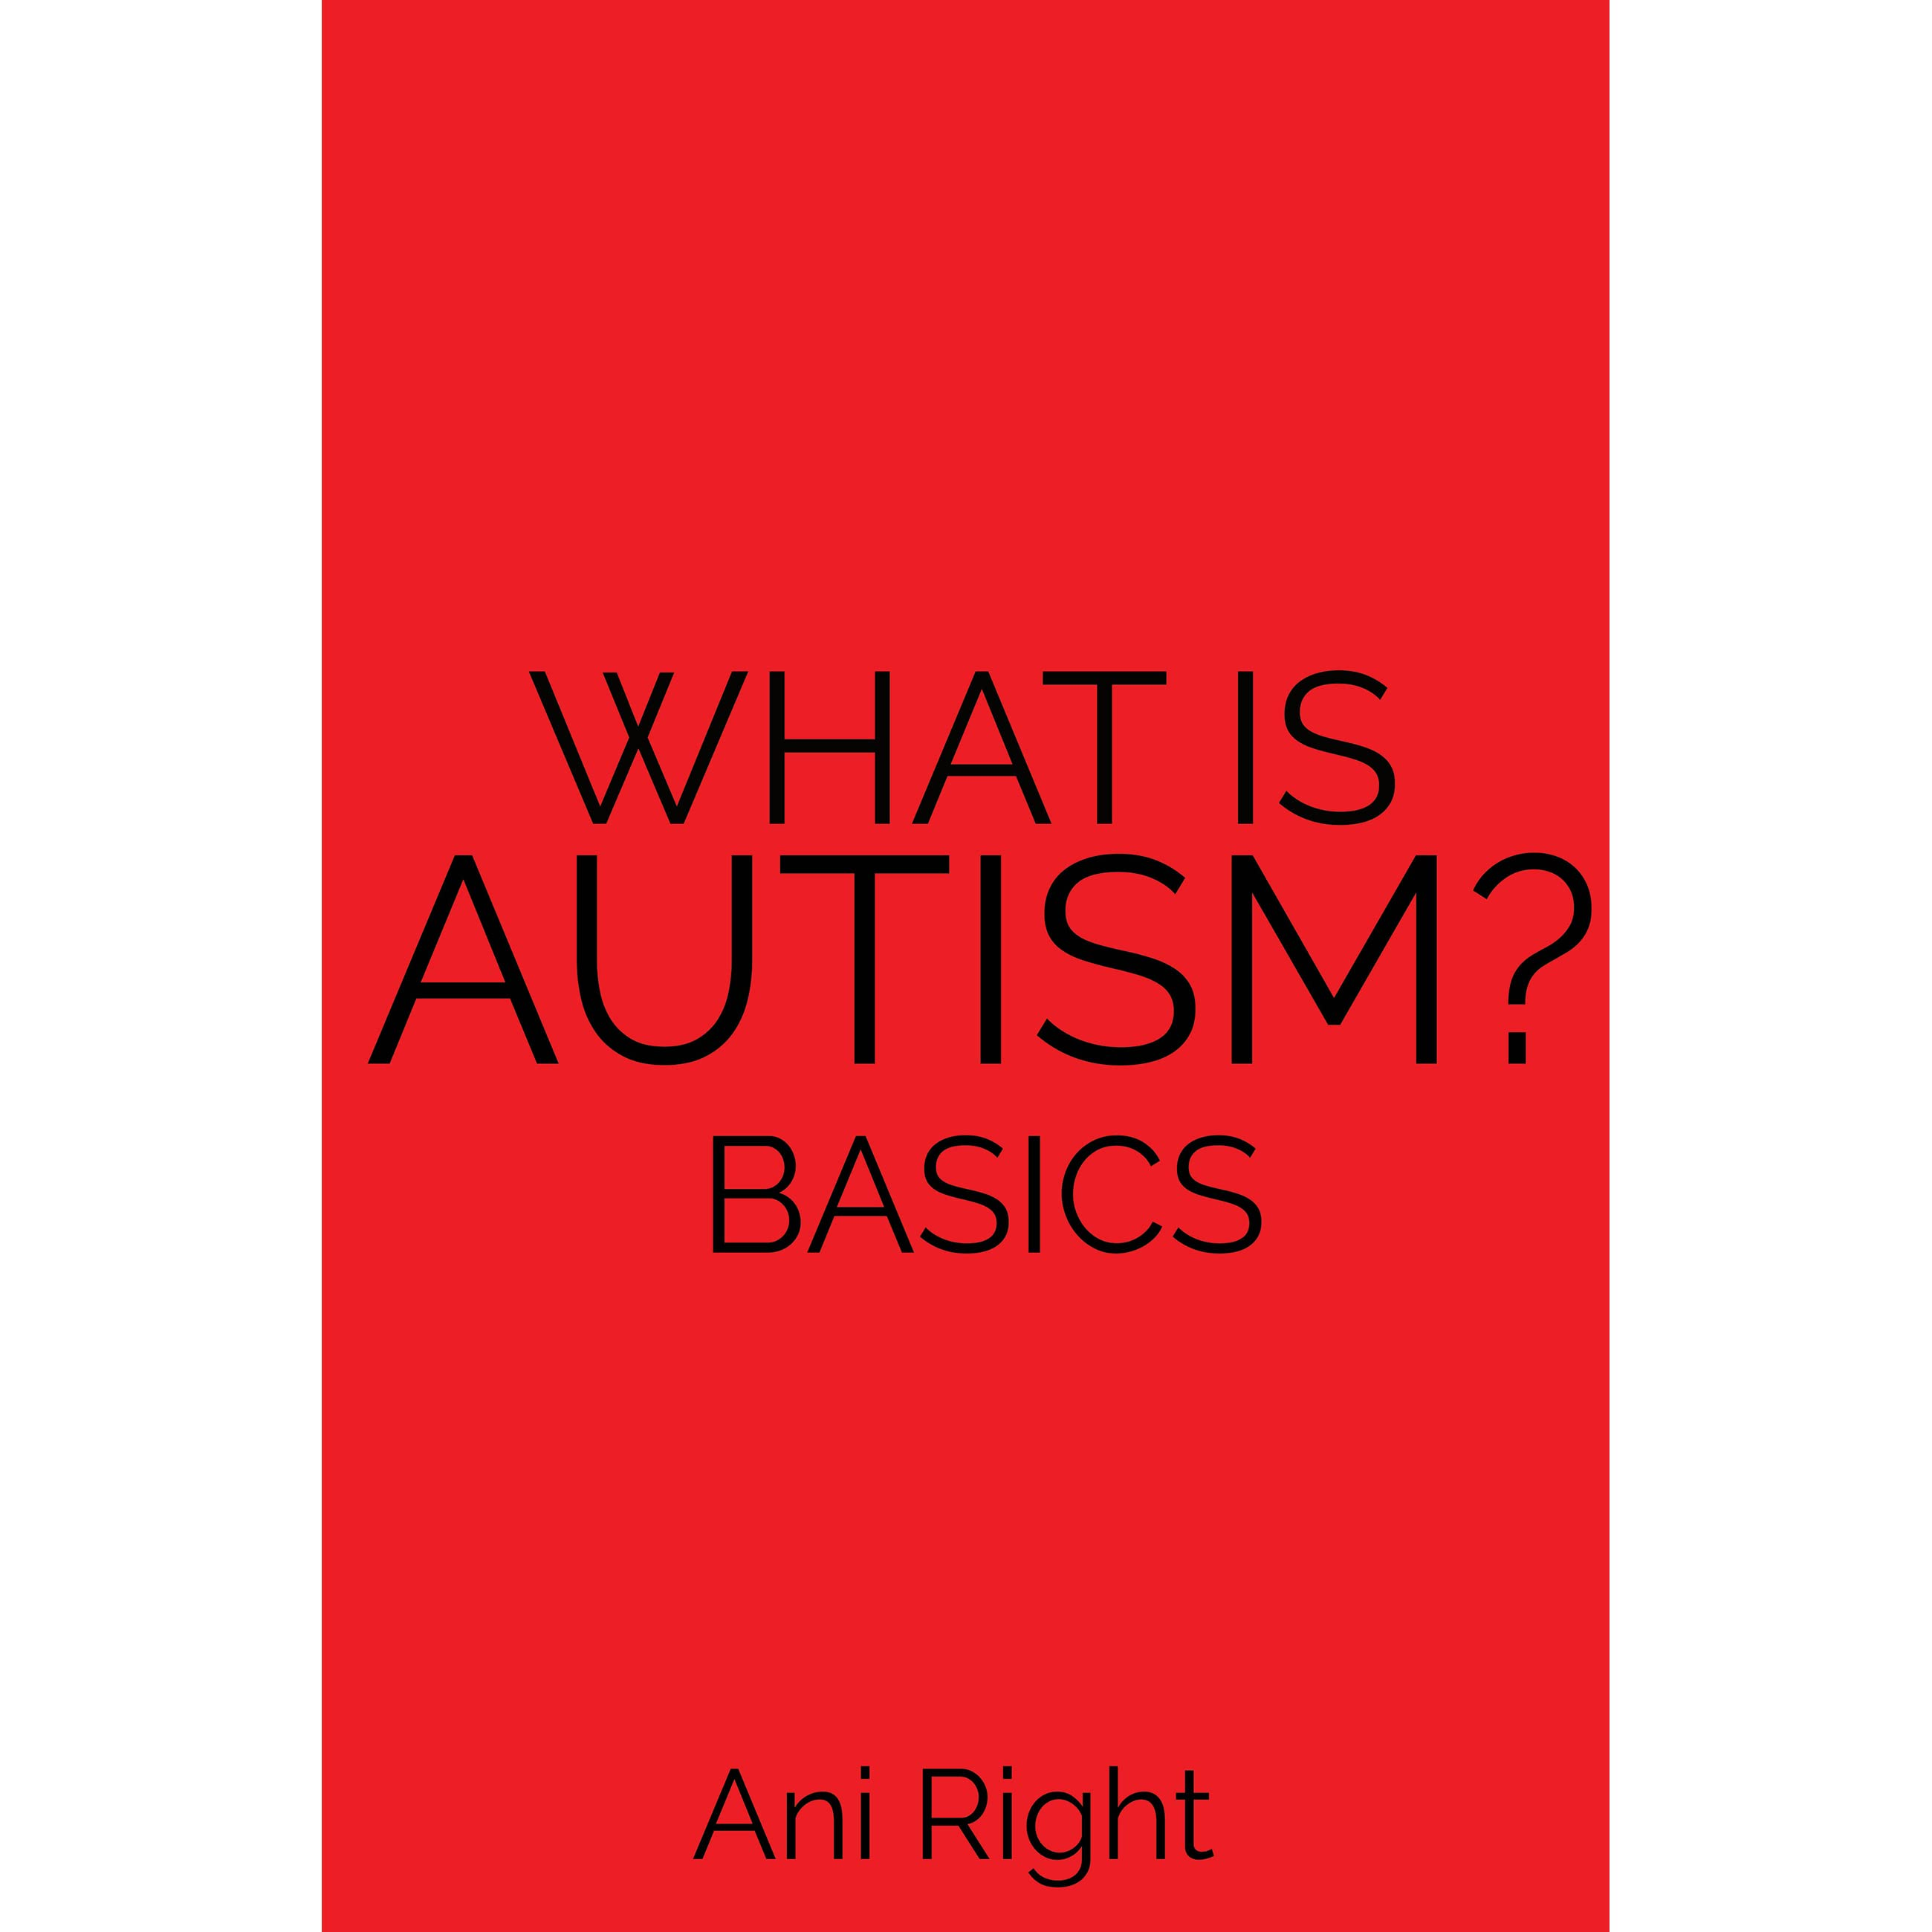 What Is Autism Basics by Ani Right